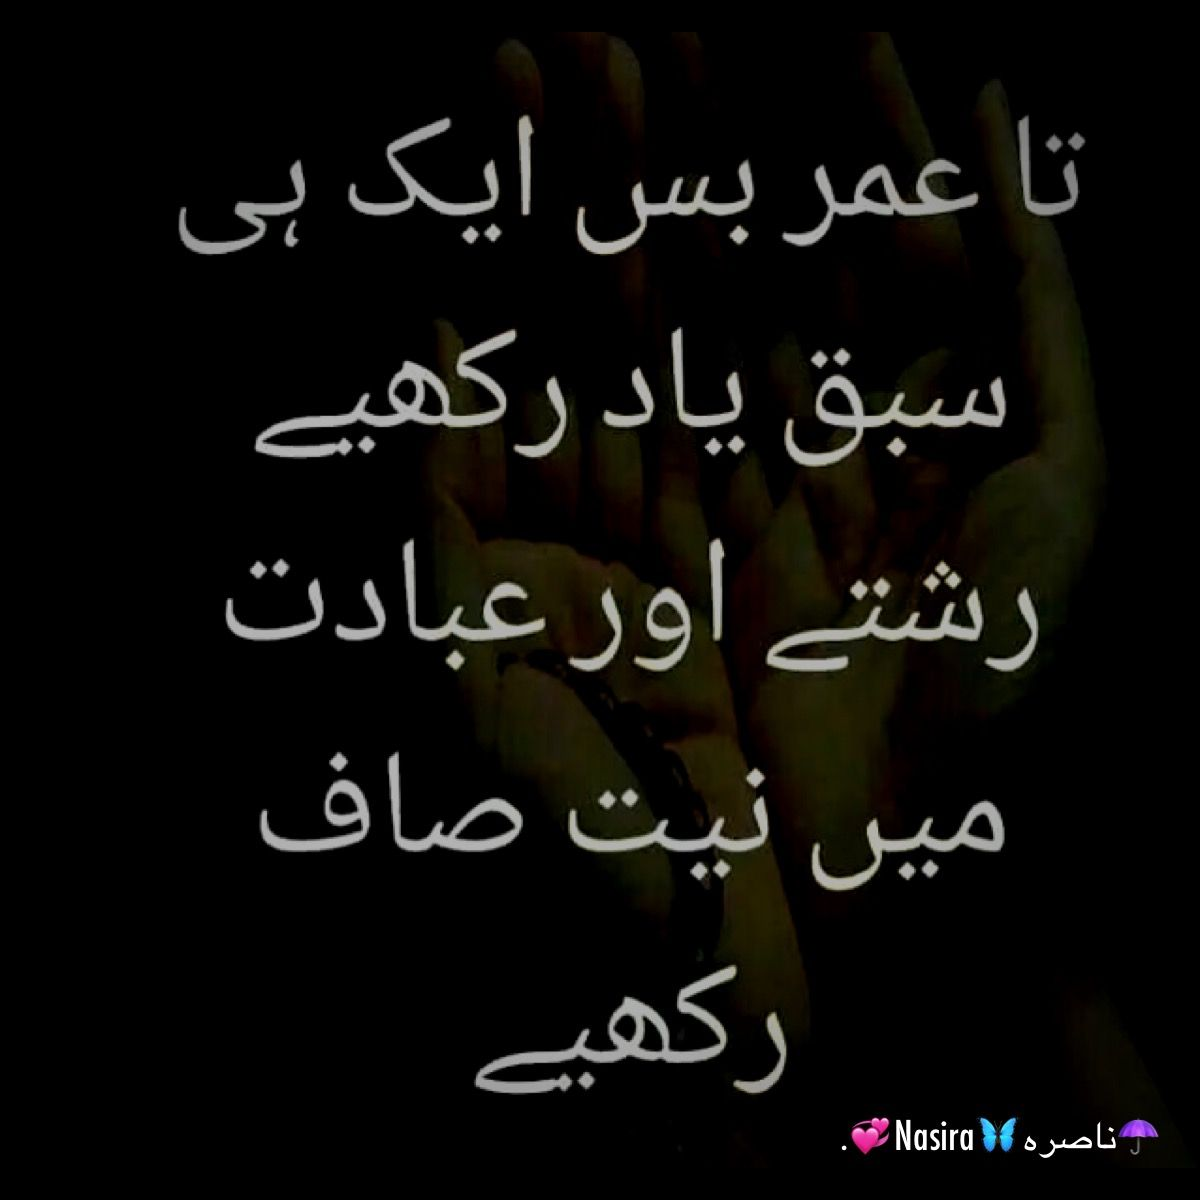 Meaningful Life Quotes Pinnasira Ahmad On Sufiana  Pinterest  Urdu Quotes Urdu